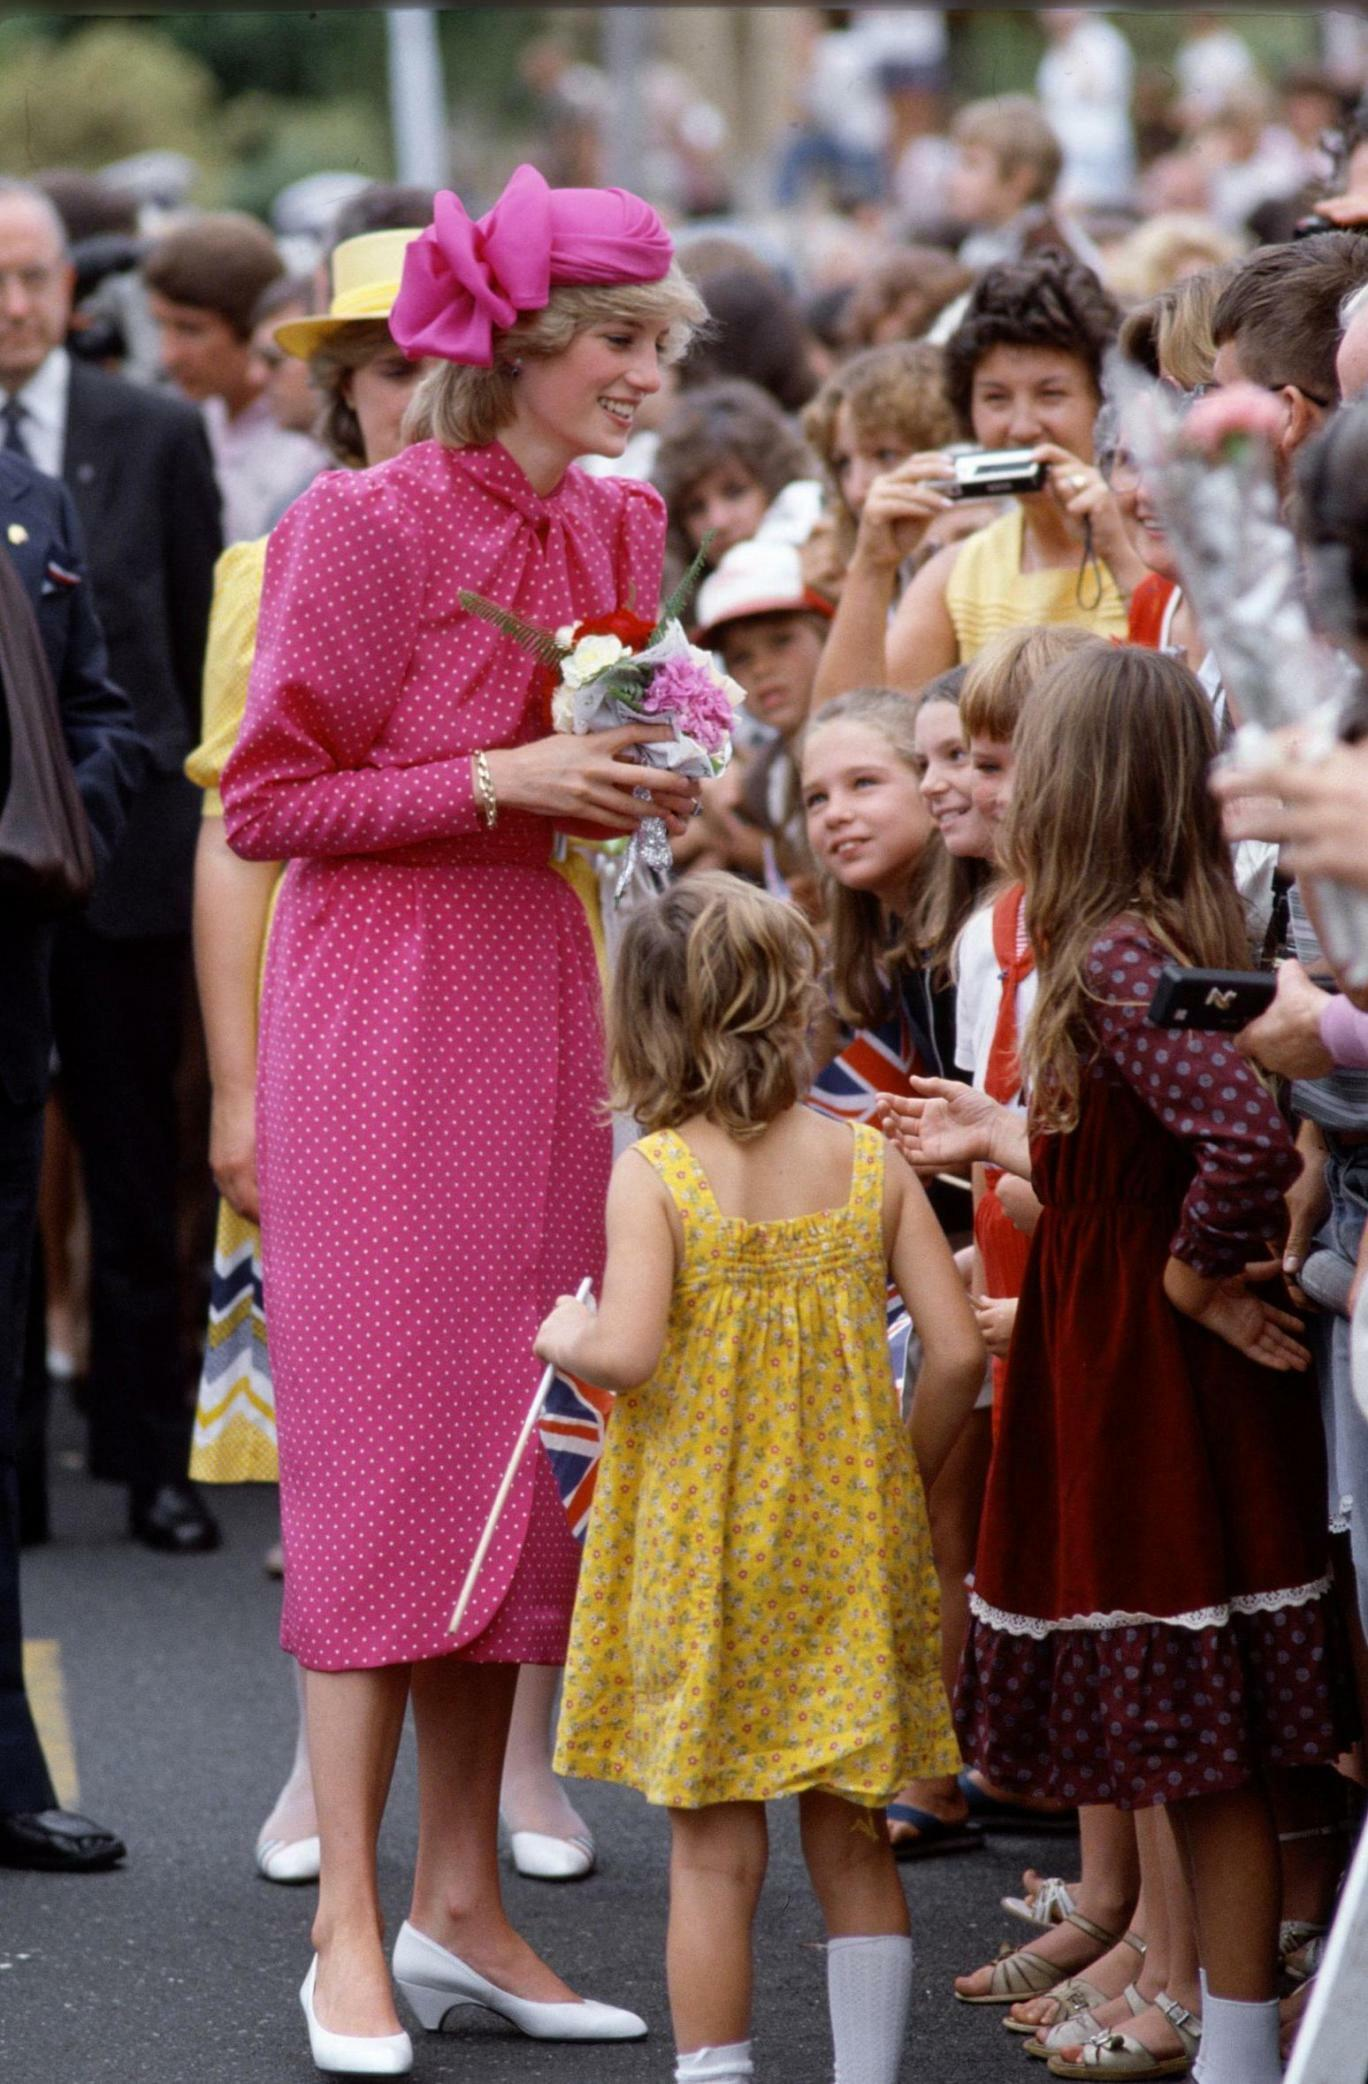 Diana poses for pictures with members of the public during a walkabout.